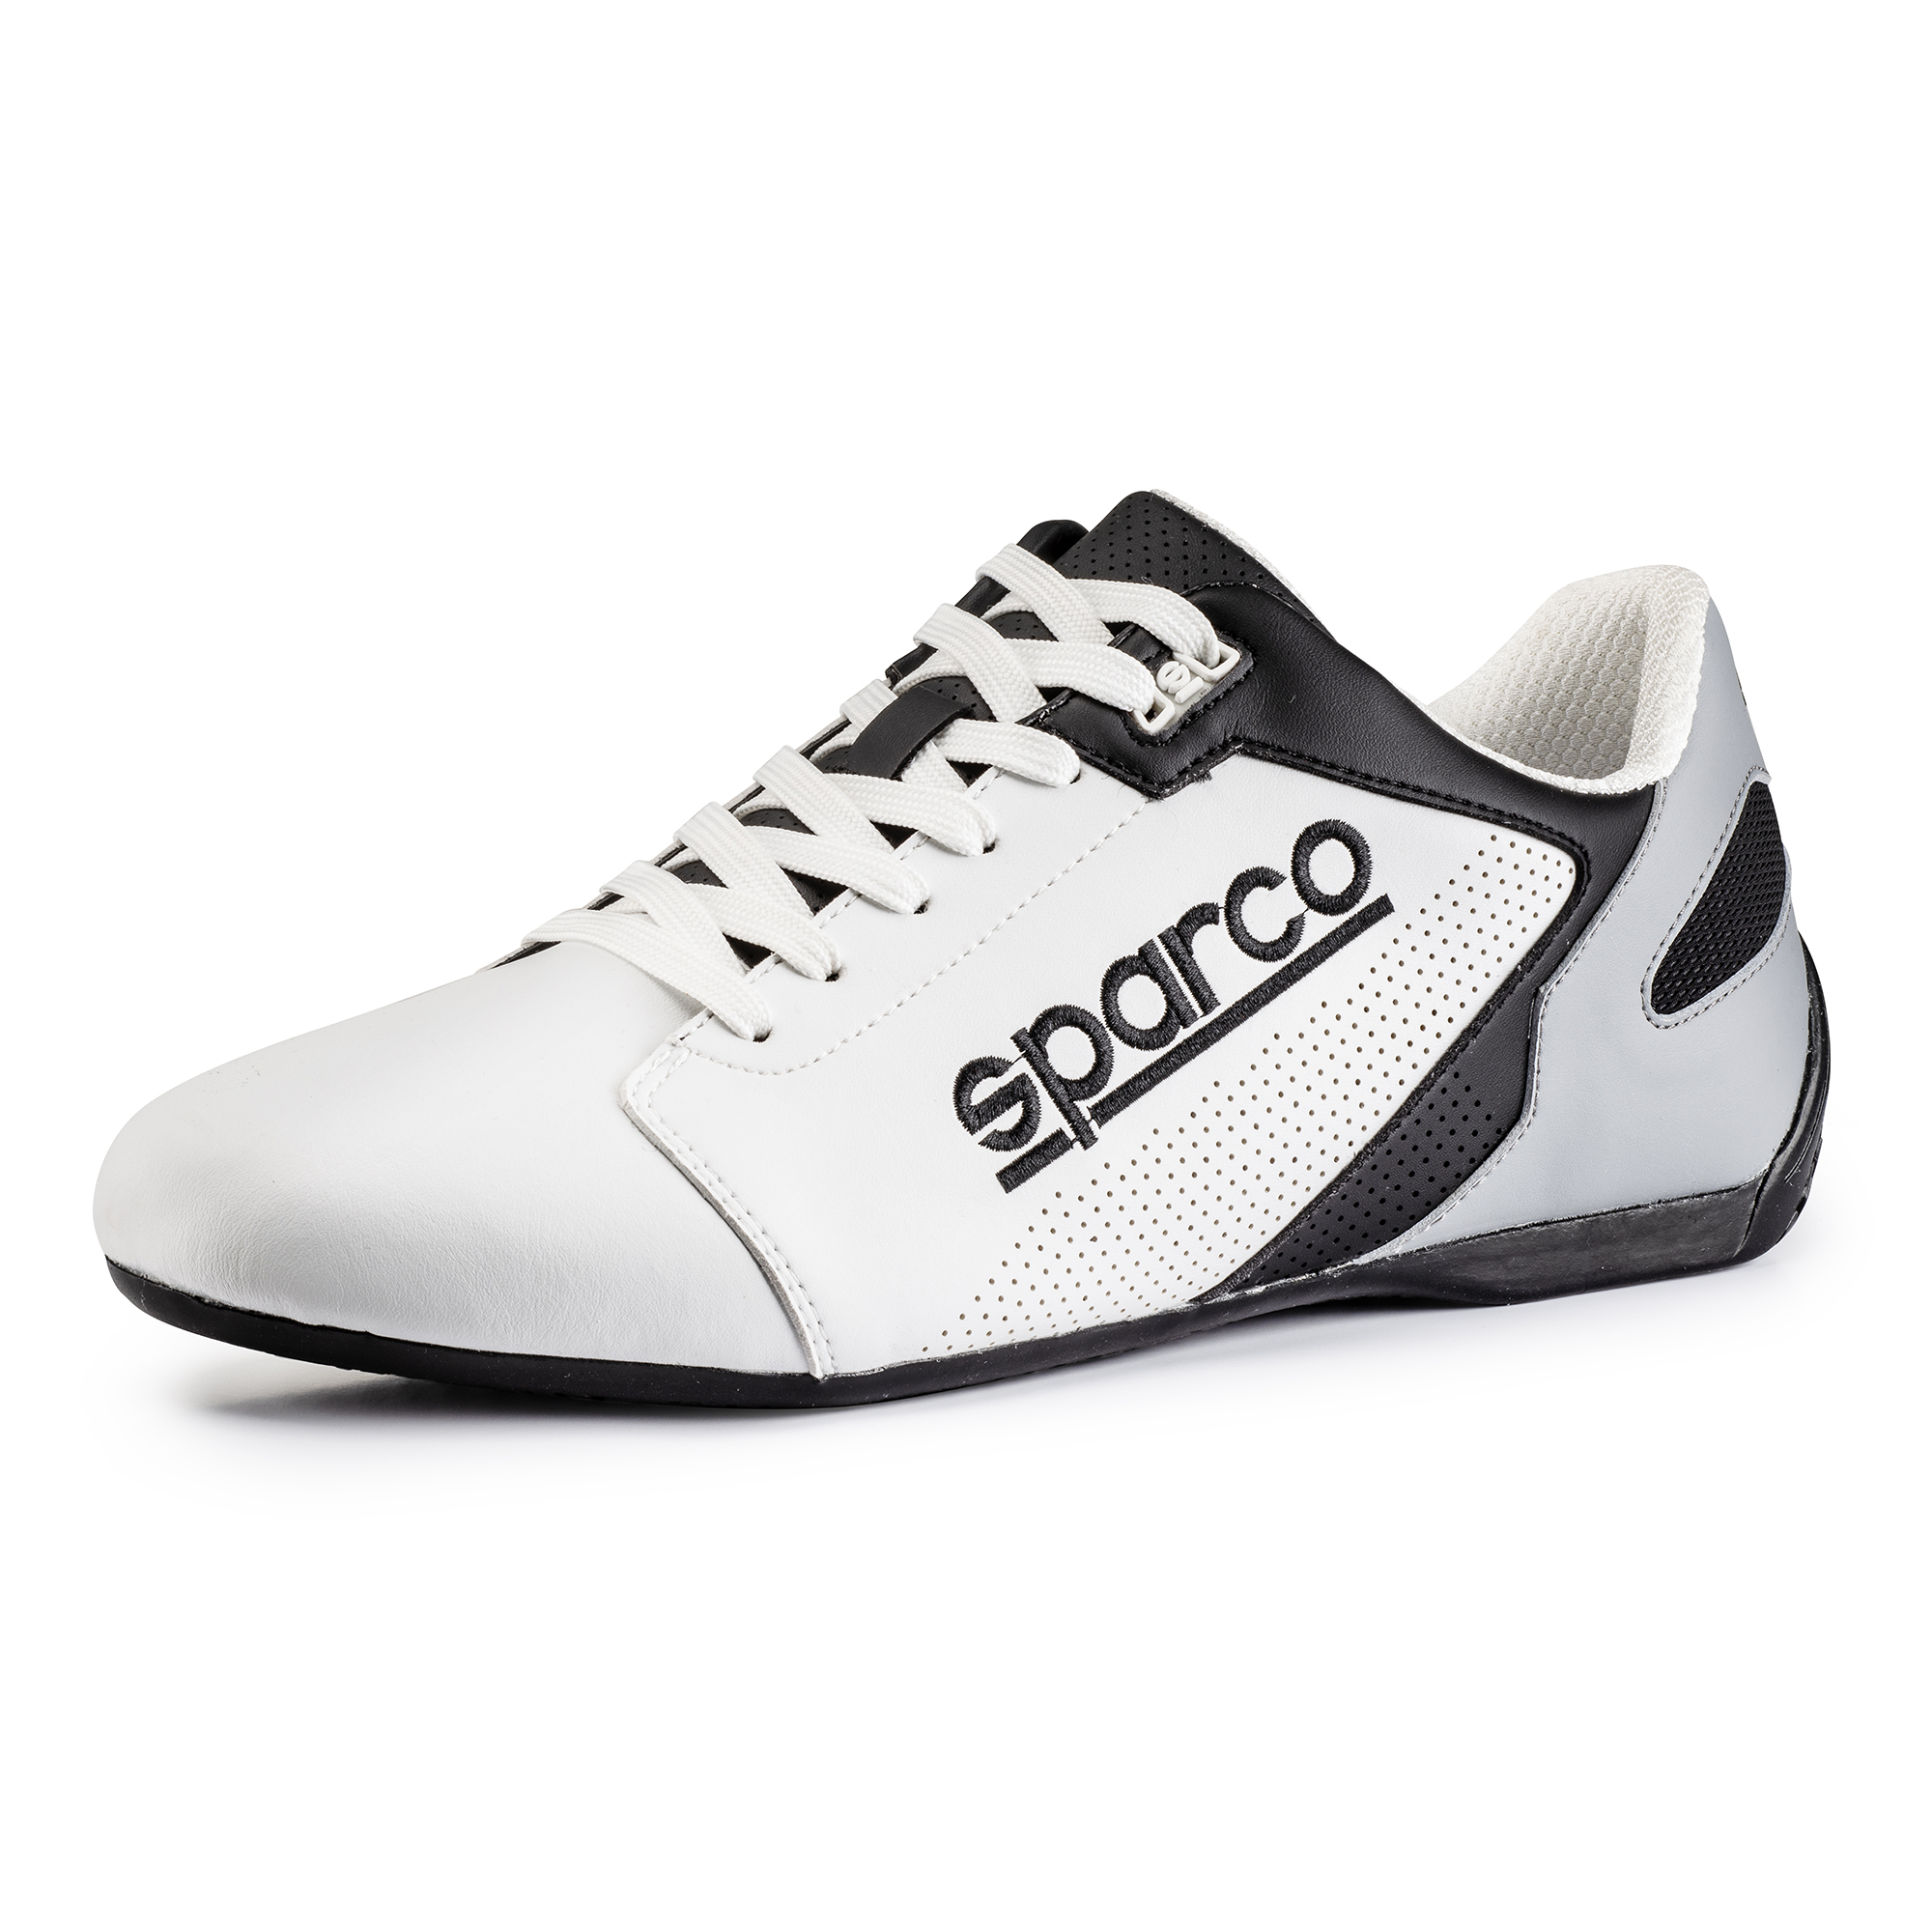 001263-Sparco-SL-17-Sports-Trainers-Driving-Shoes-in-4-Colours-and-Sizes-36-46 thumbnail 12